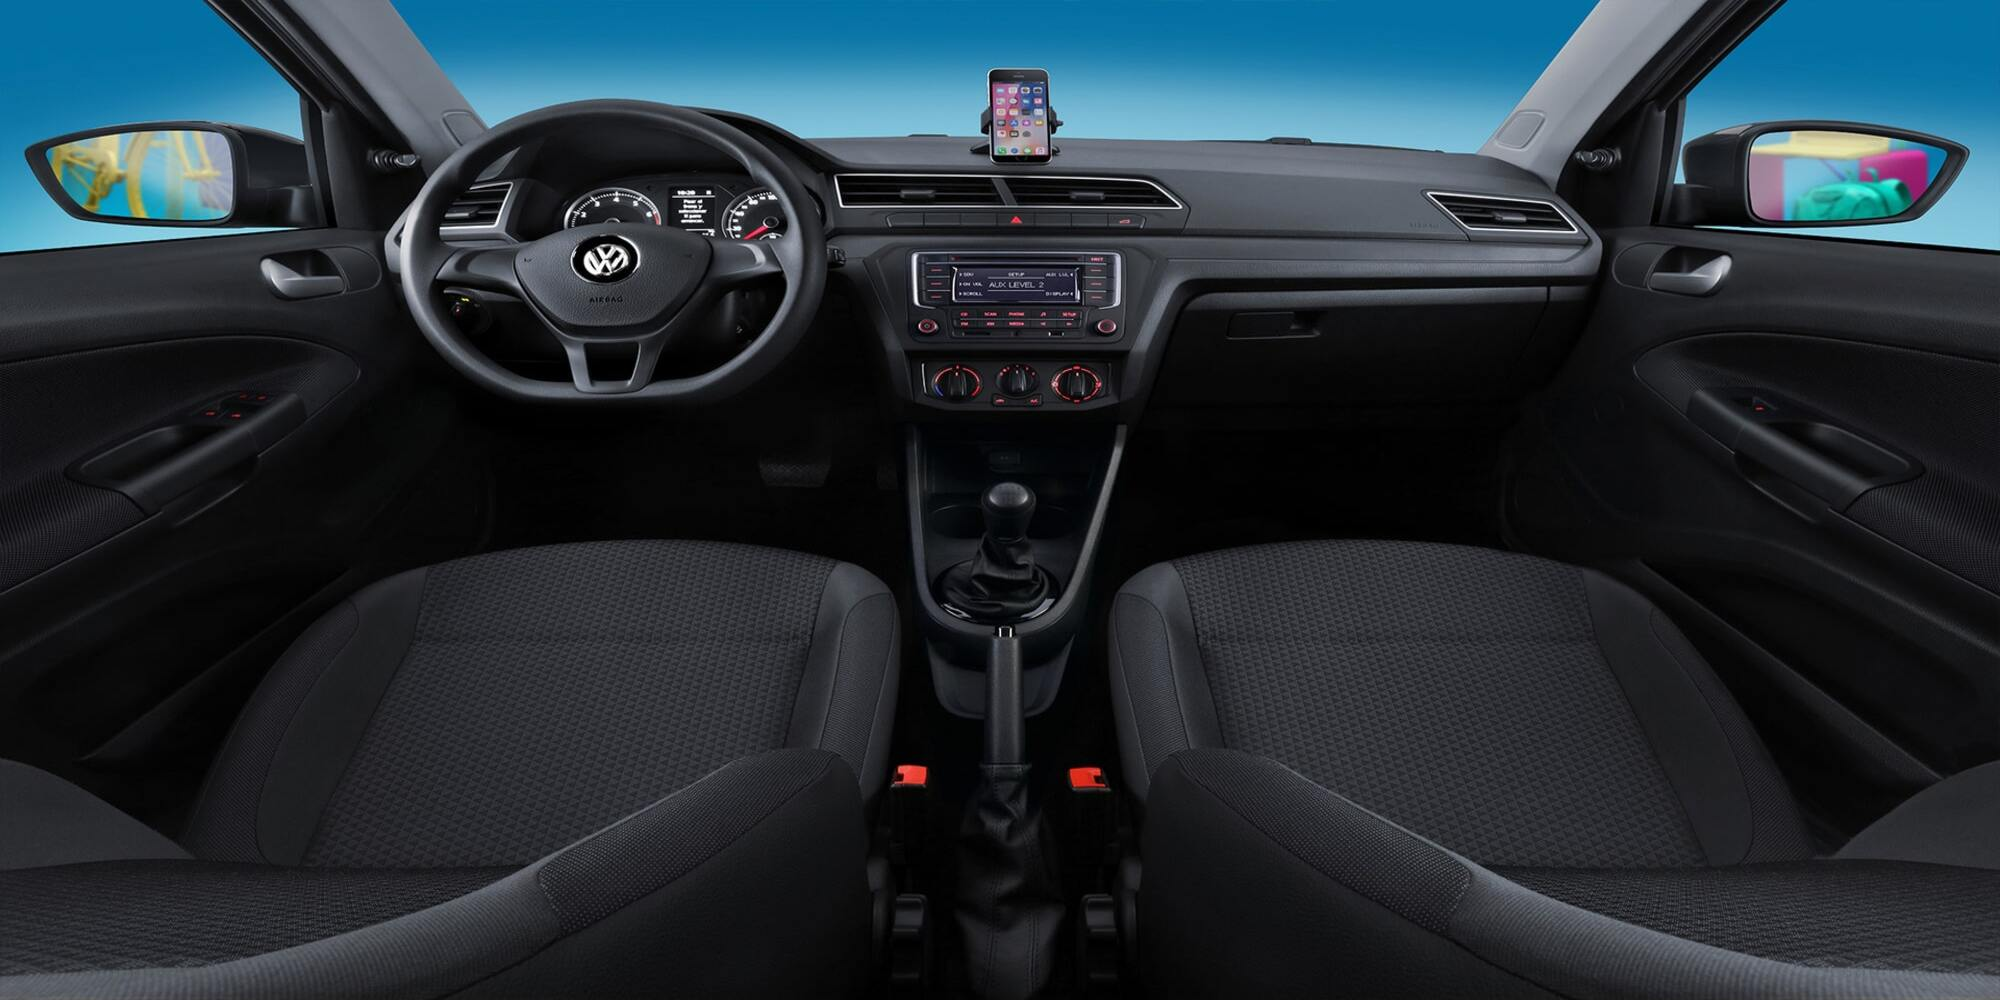 voyage-interior-panel-frontal.jpg